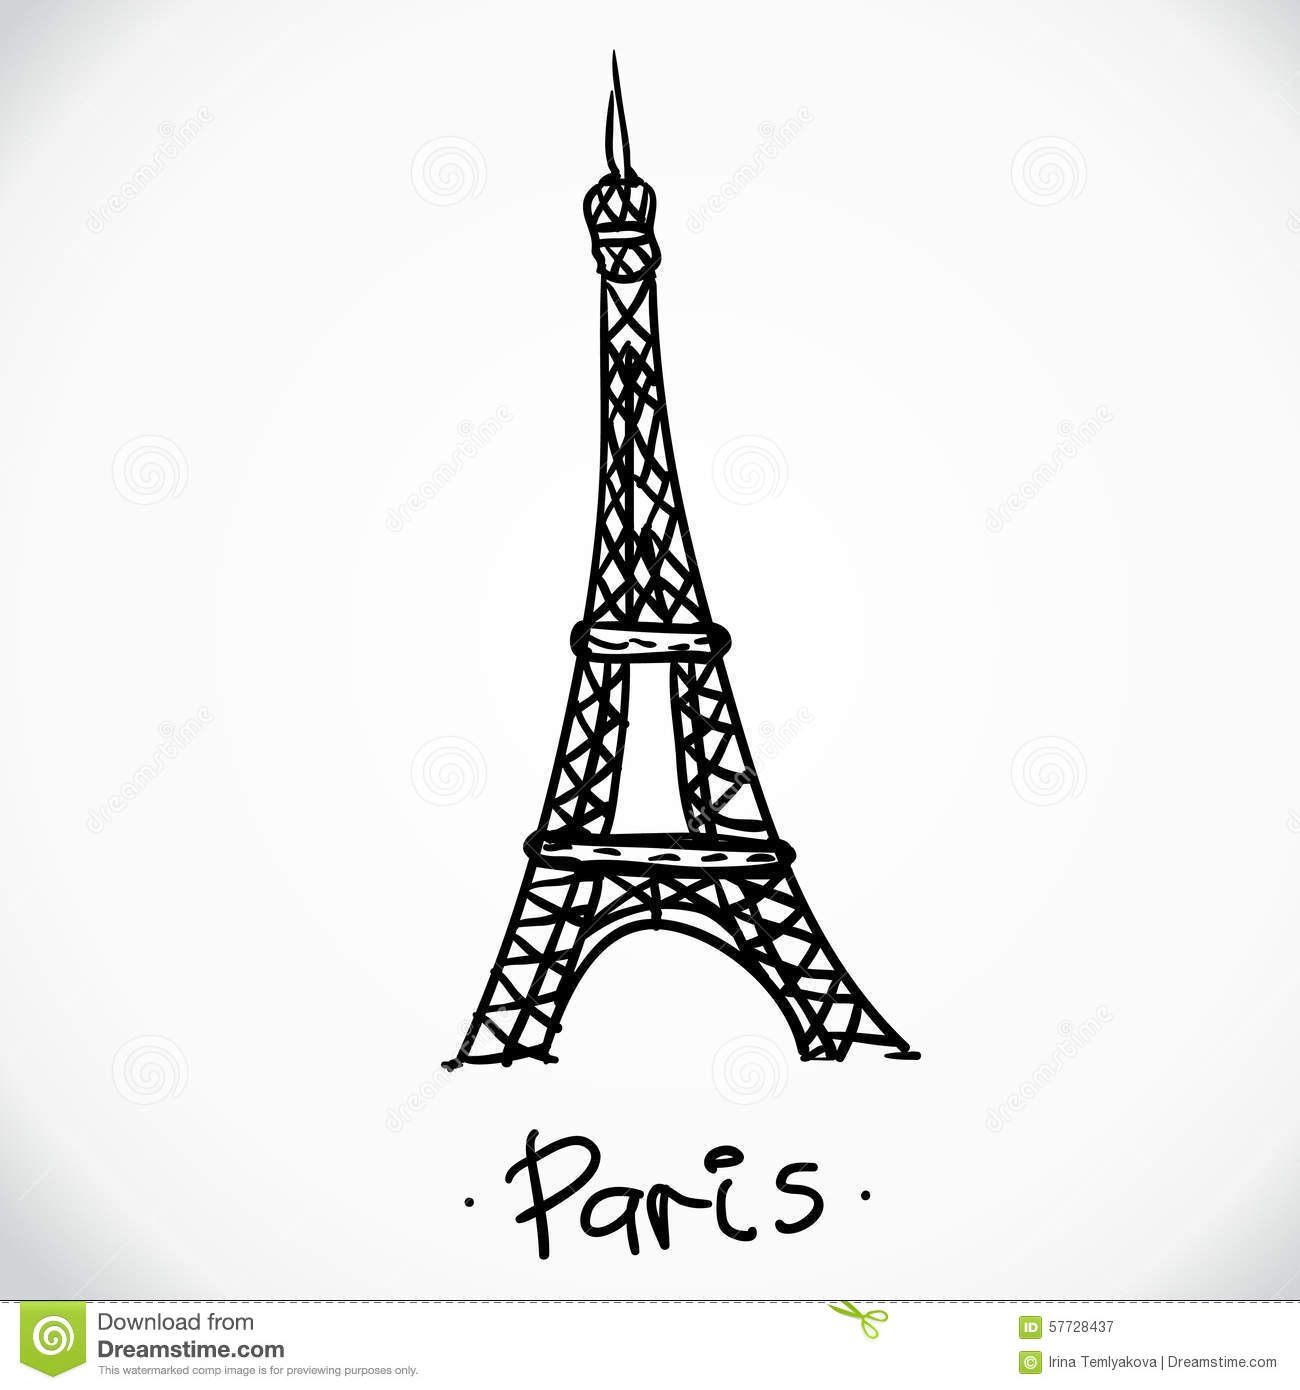 Vector eiffel tower stock vector illustration of design 57728437 download vector eiffel tower stock vector illustration of design 57728437 thecheapjerseys Gallery